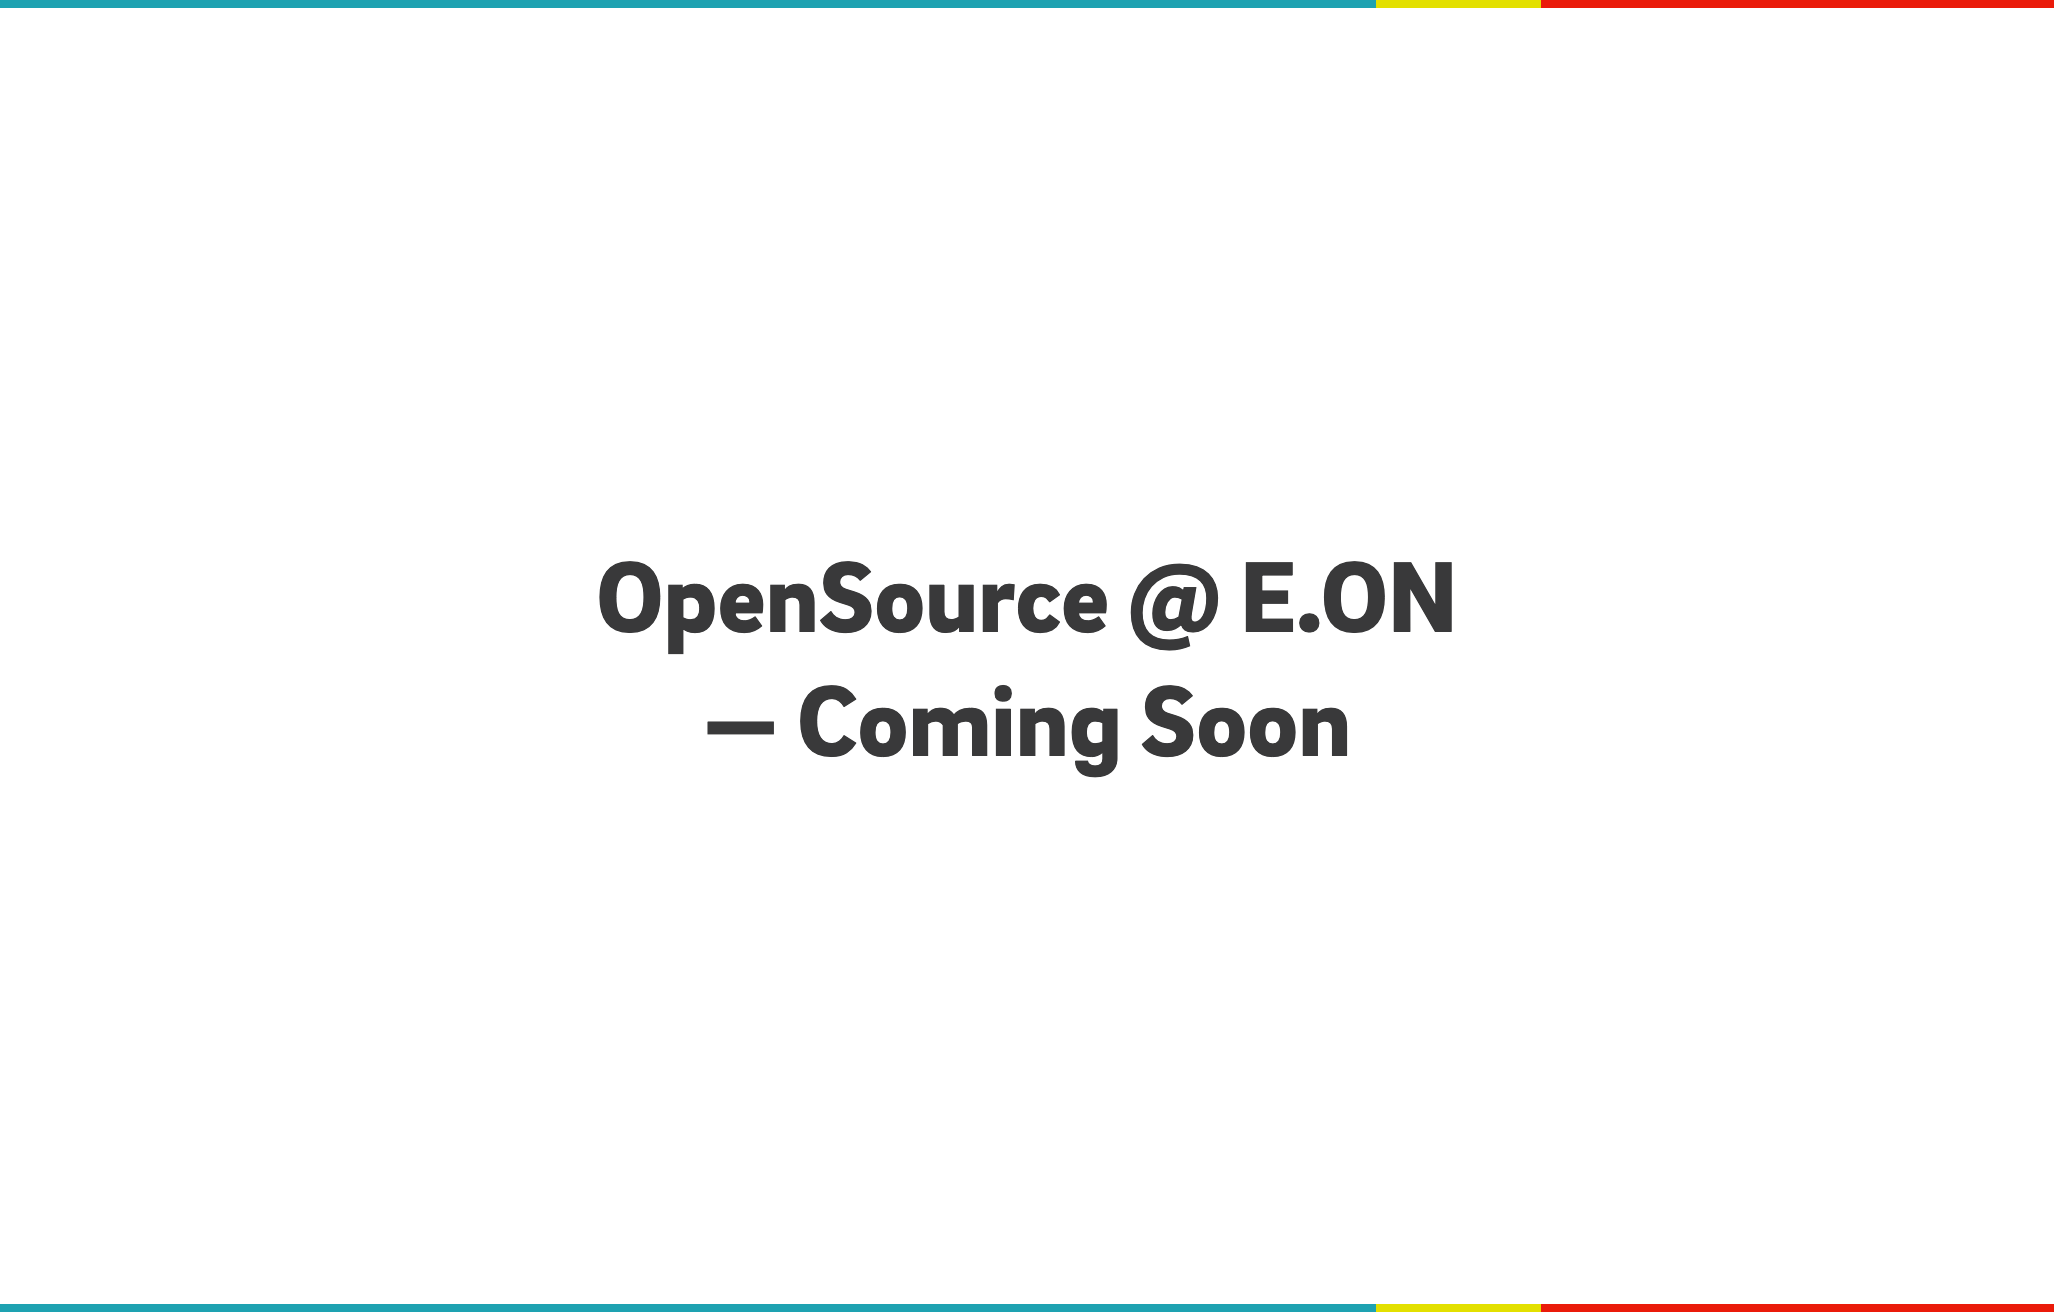 Screenshot_2020-07-01 OpenSource E ON(1)